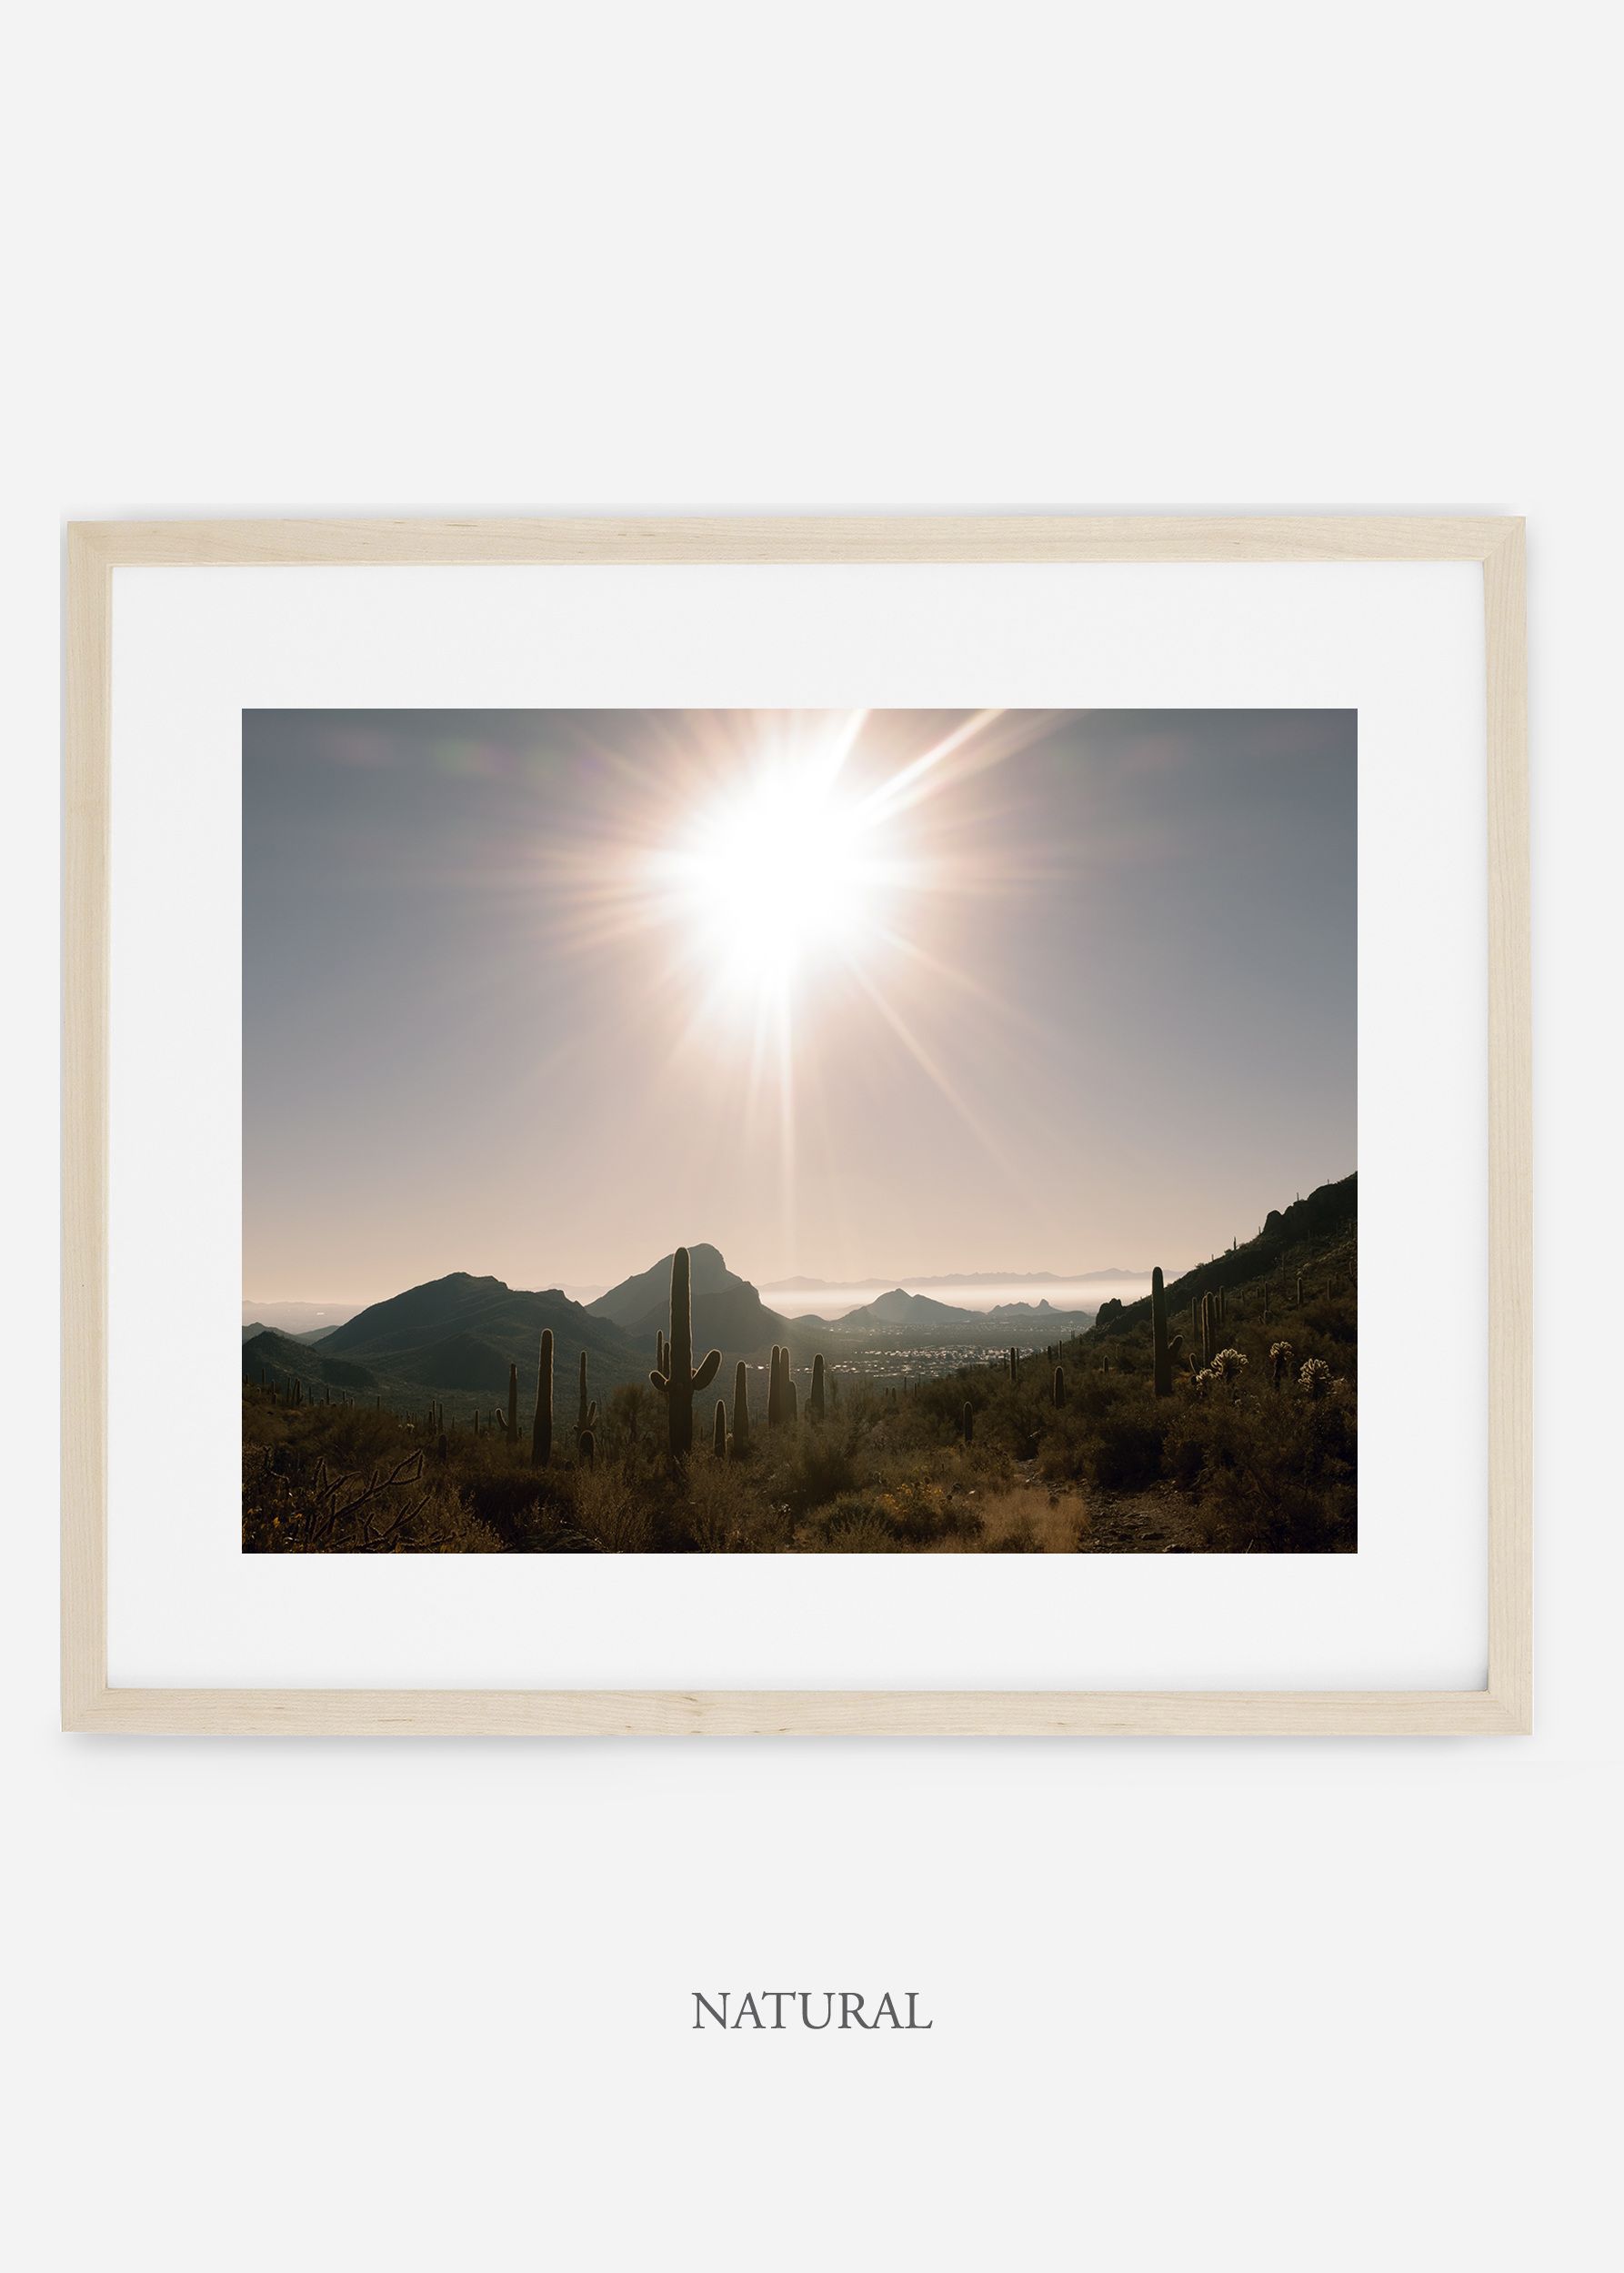 naturalframe-saguaroNo.15-wildercalifornia-art-wallart-cactusprint-homedecor-prints-arizona-botanical-artwork-interiordesign.jpg